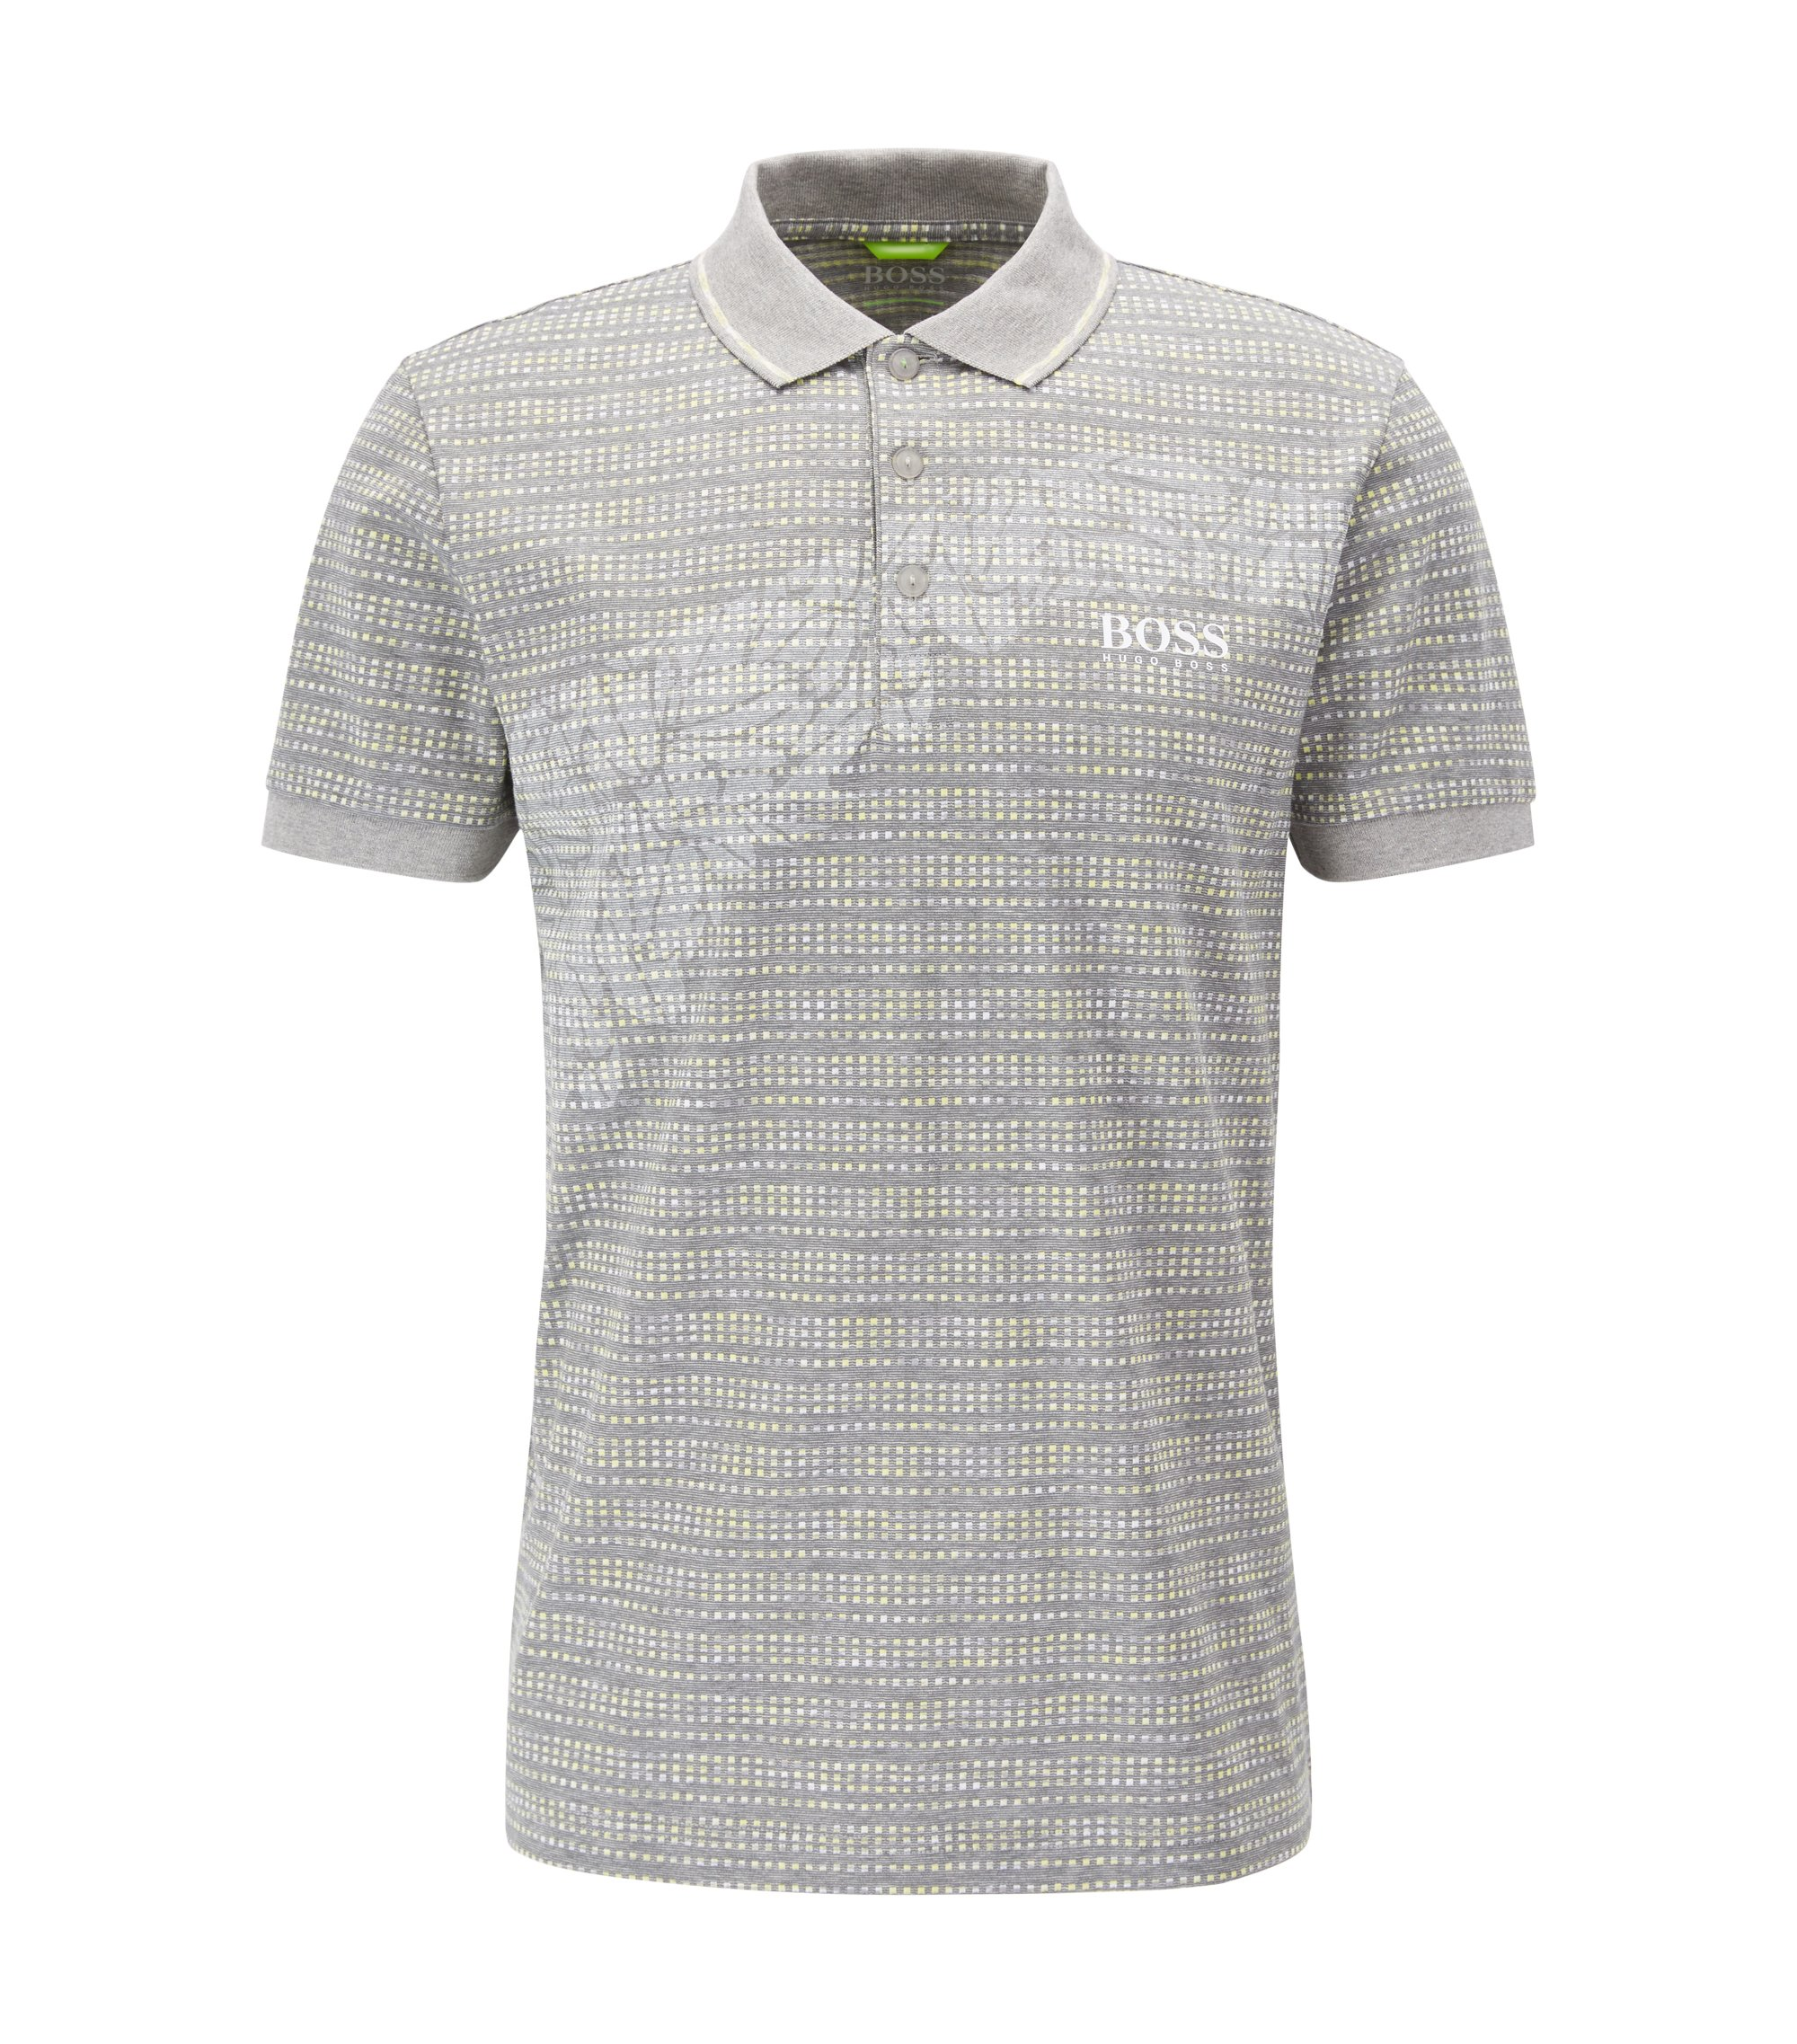 Cotton Blend Polo Shirt, Slim Fit | Paule Pro, Light Grey